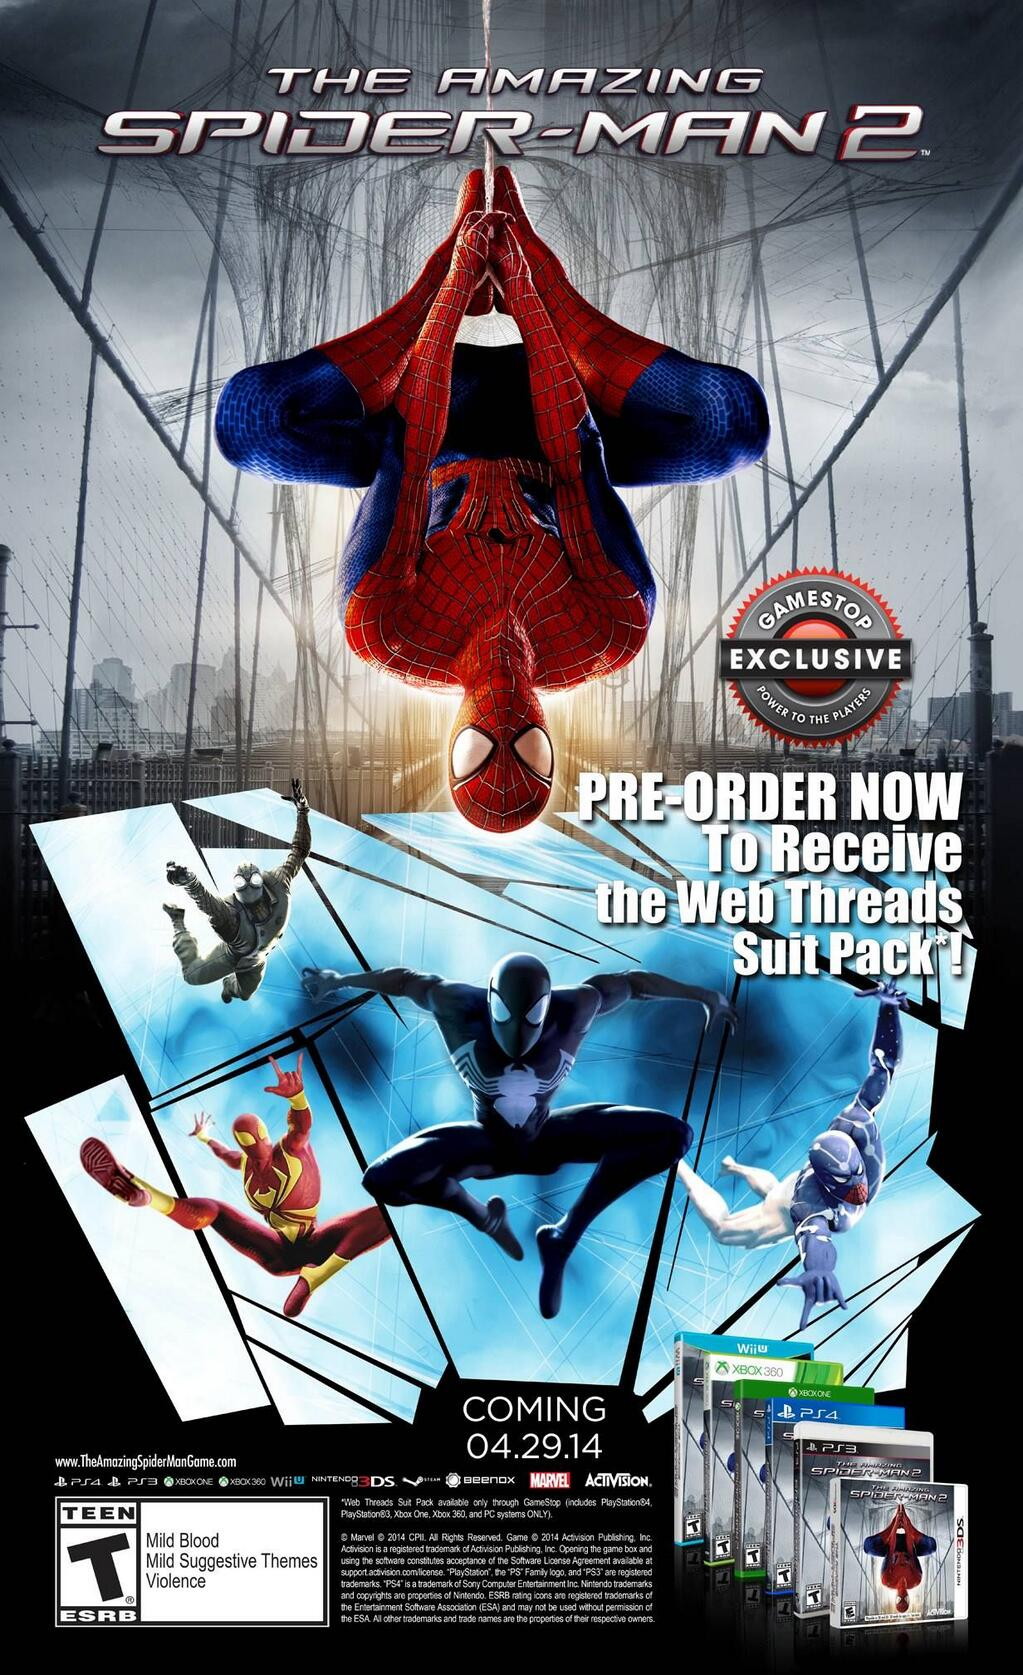 the amazing spider-man 2 release dates set - playstation lifestyle